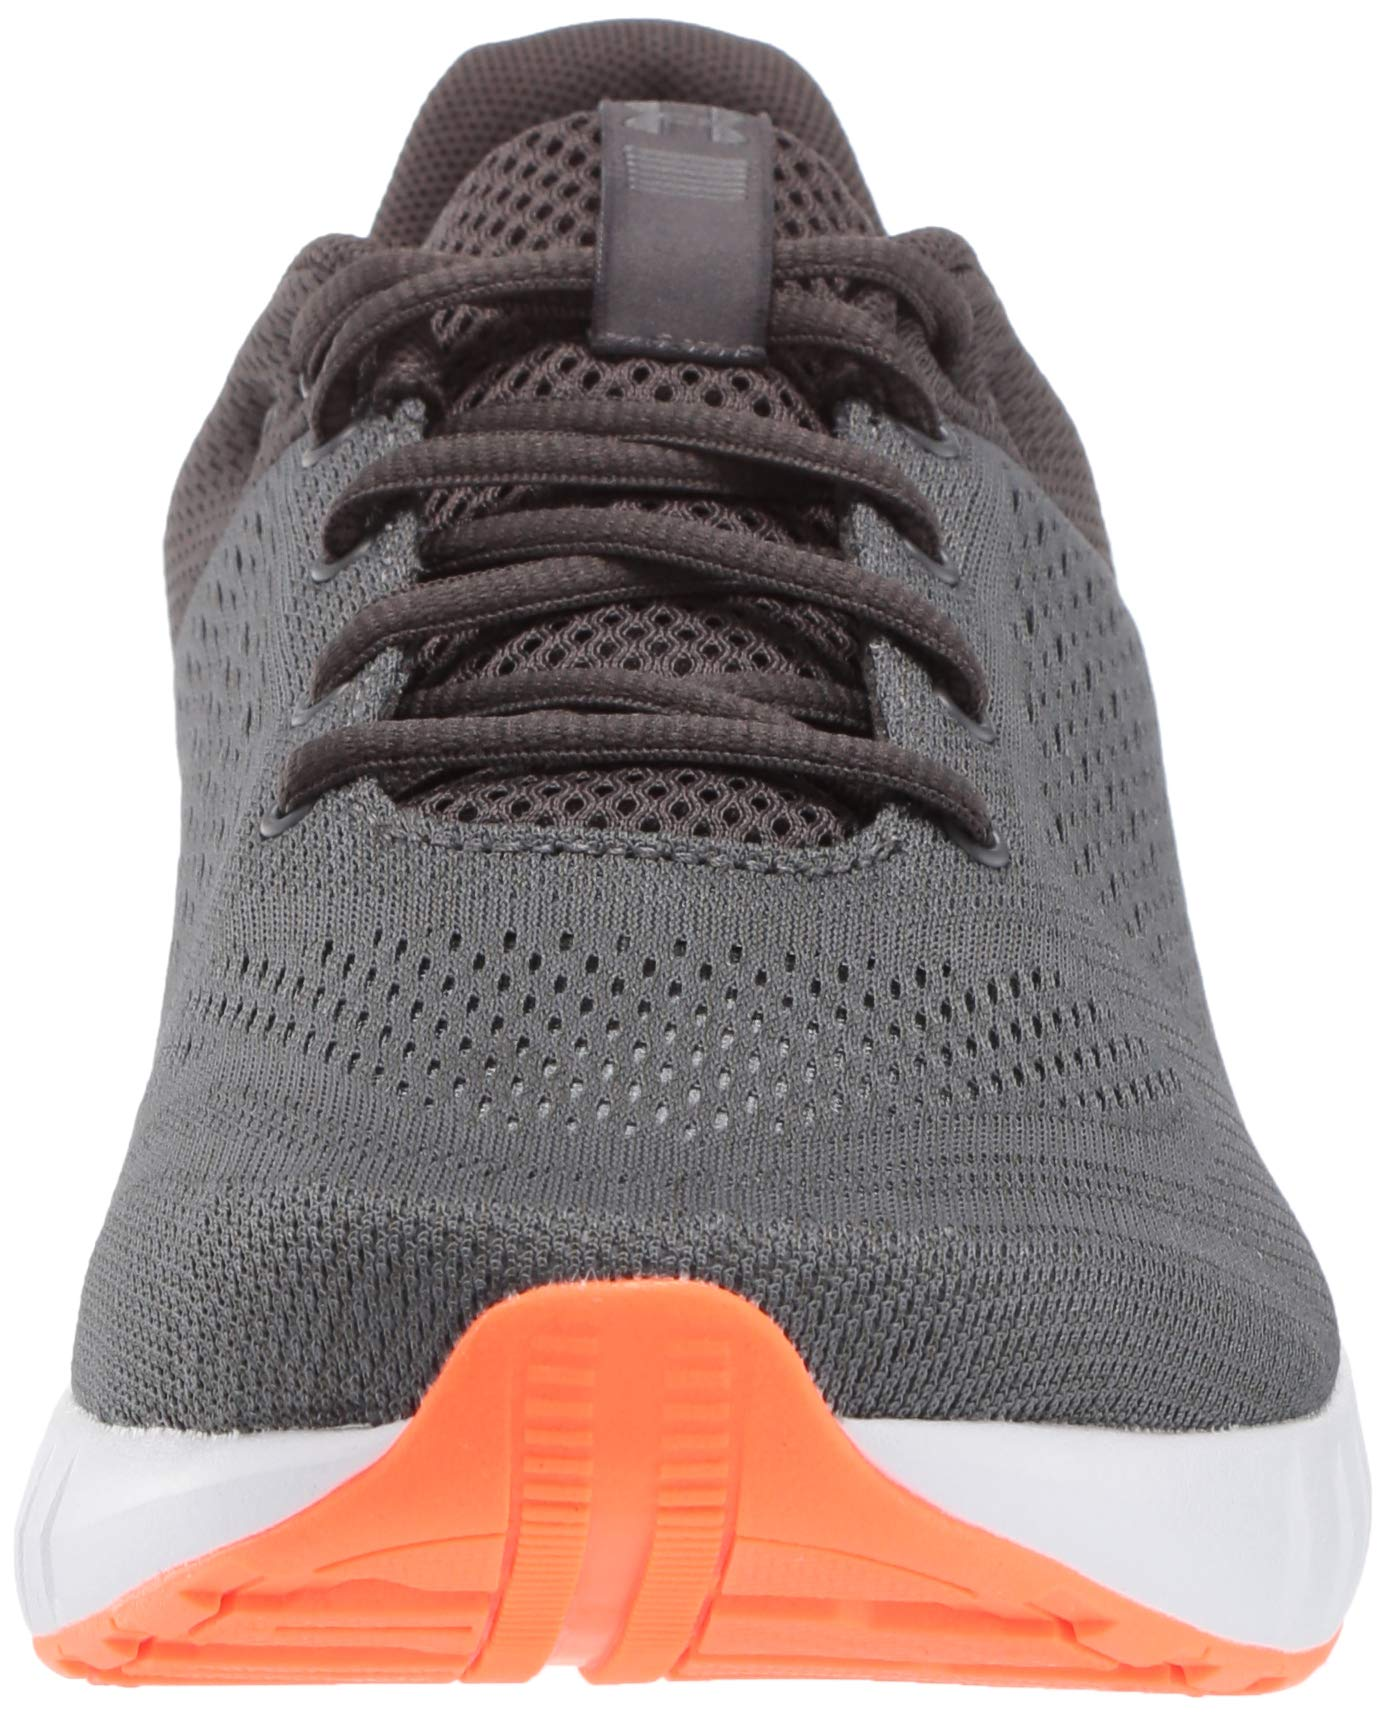 Under Armour Men's Micro G Pursuit Running Shoe, White (112)/White, 7 by Under Armour (Image #4)